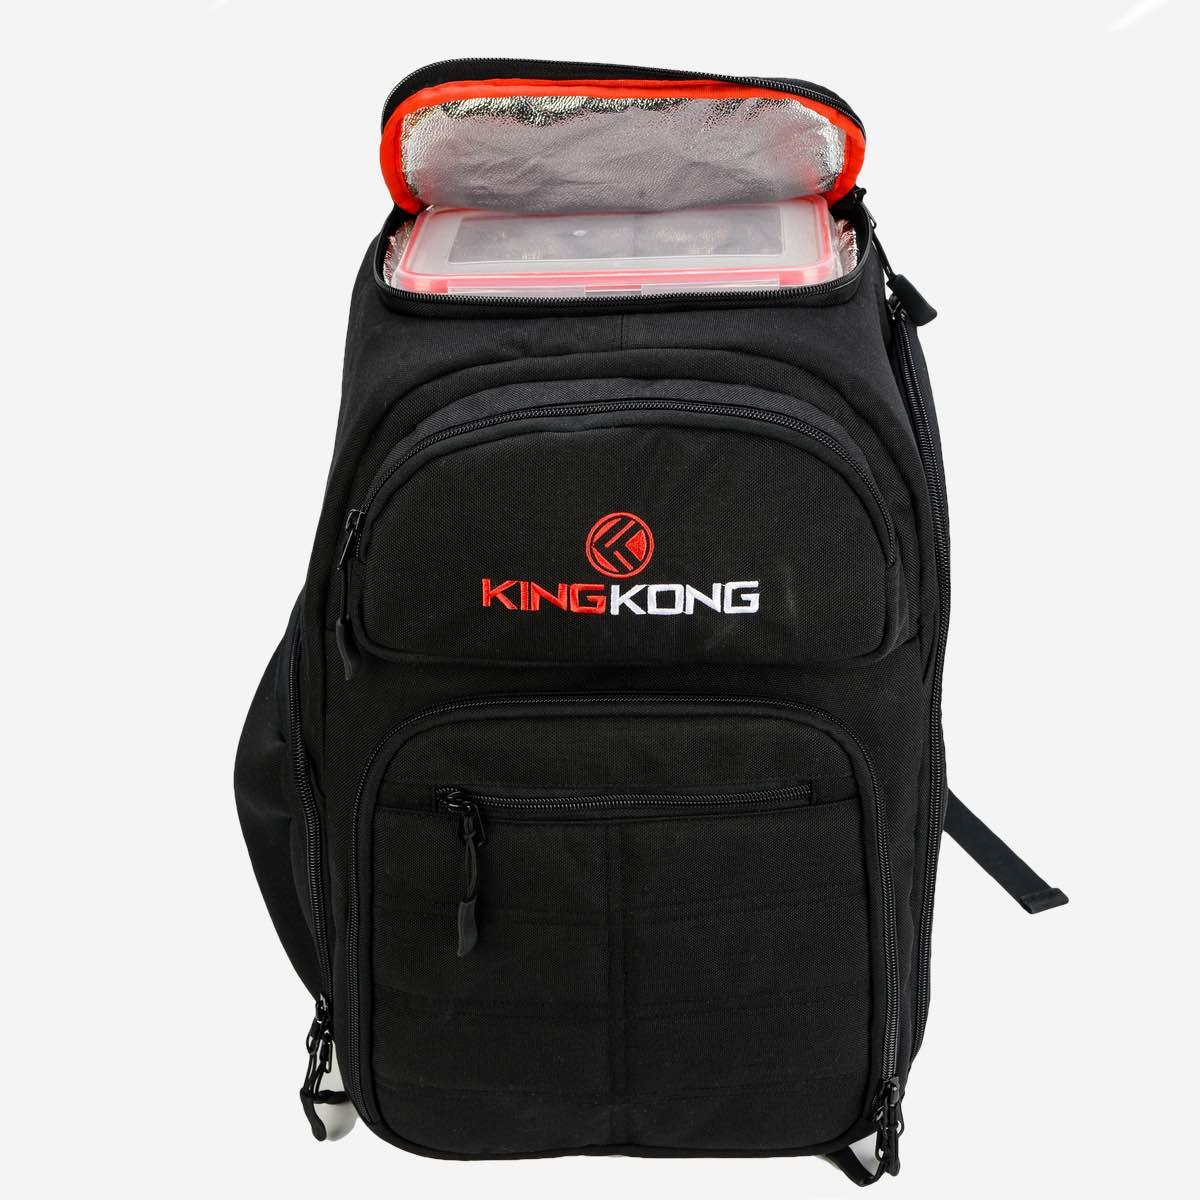 King Kong Fuel Meal Prep Backpack - Insulated Thermal Polyester Lunch Bag, Military Spec Nylon with Two Reusable Ice Packs - Black by King Kong (Image #2)